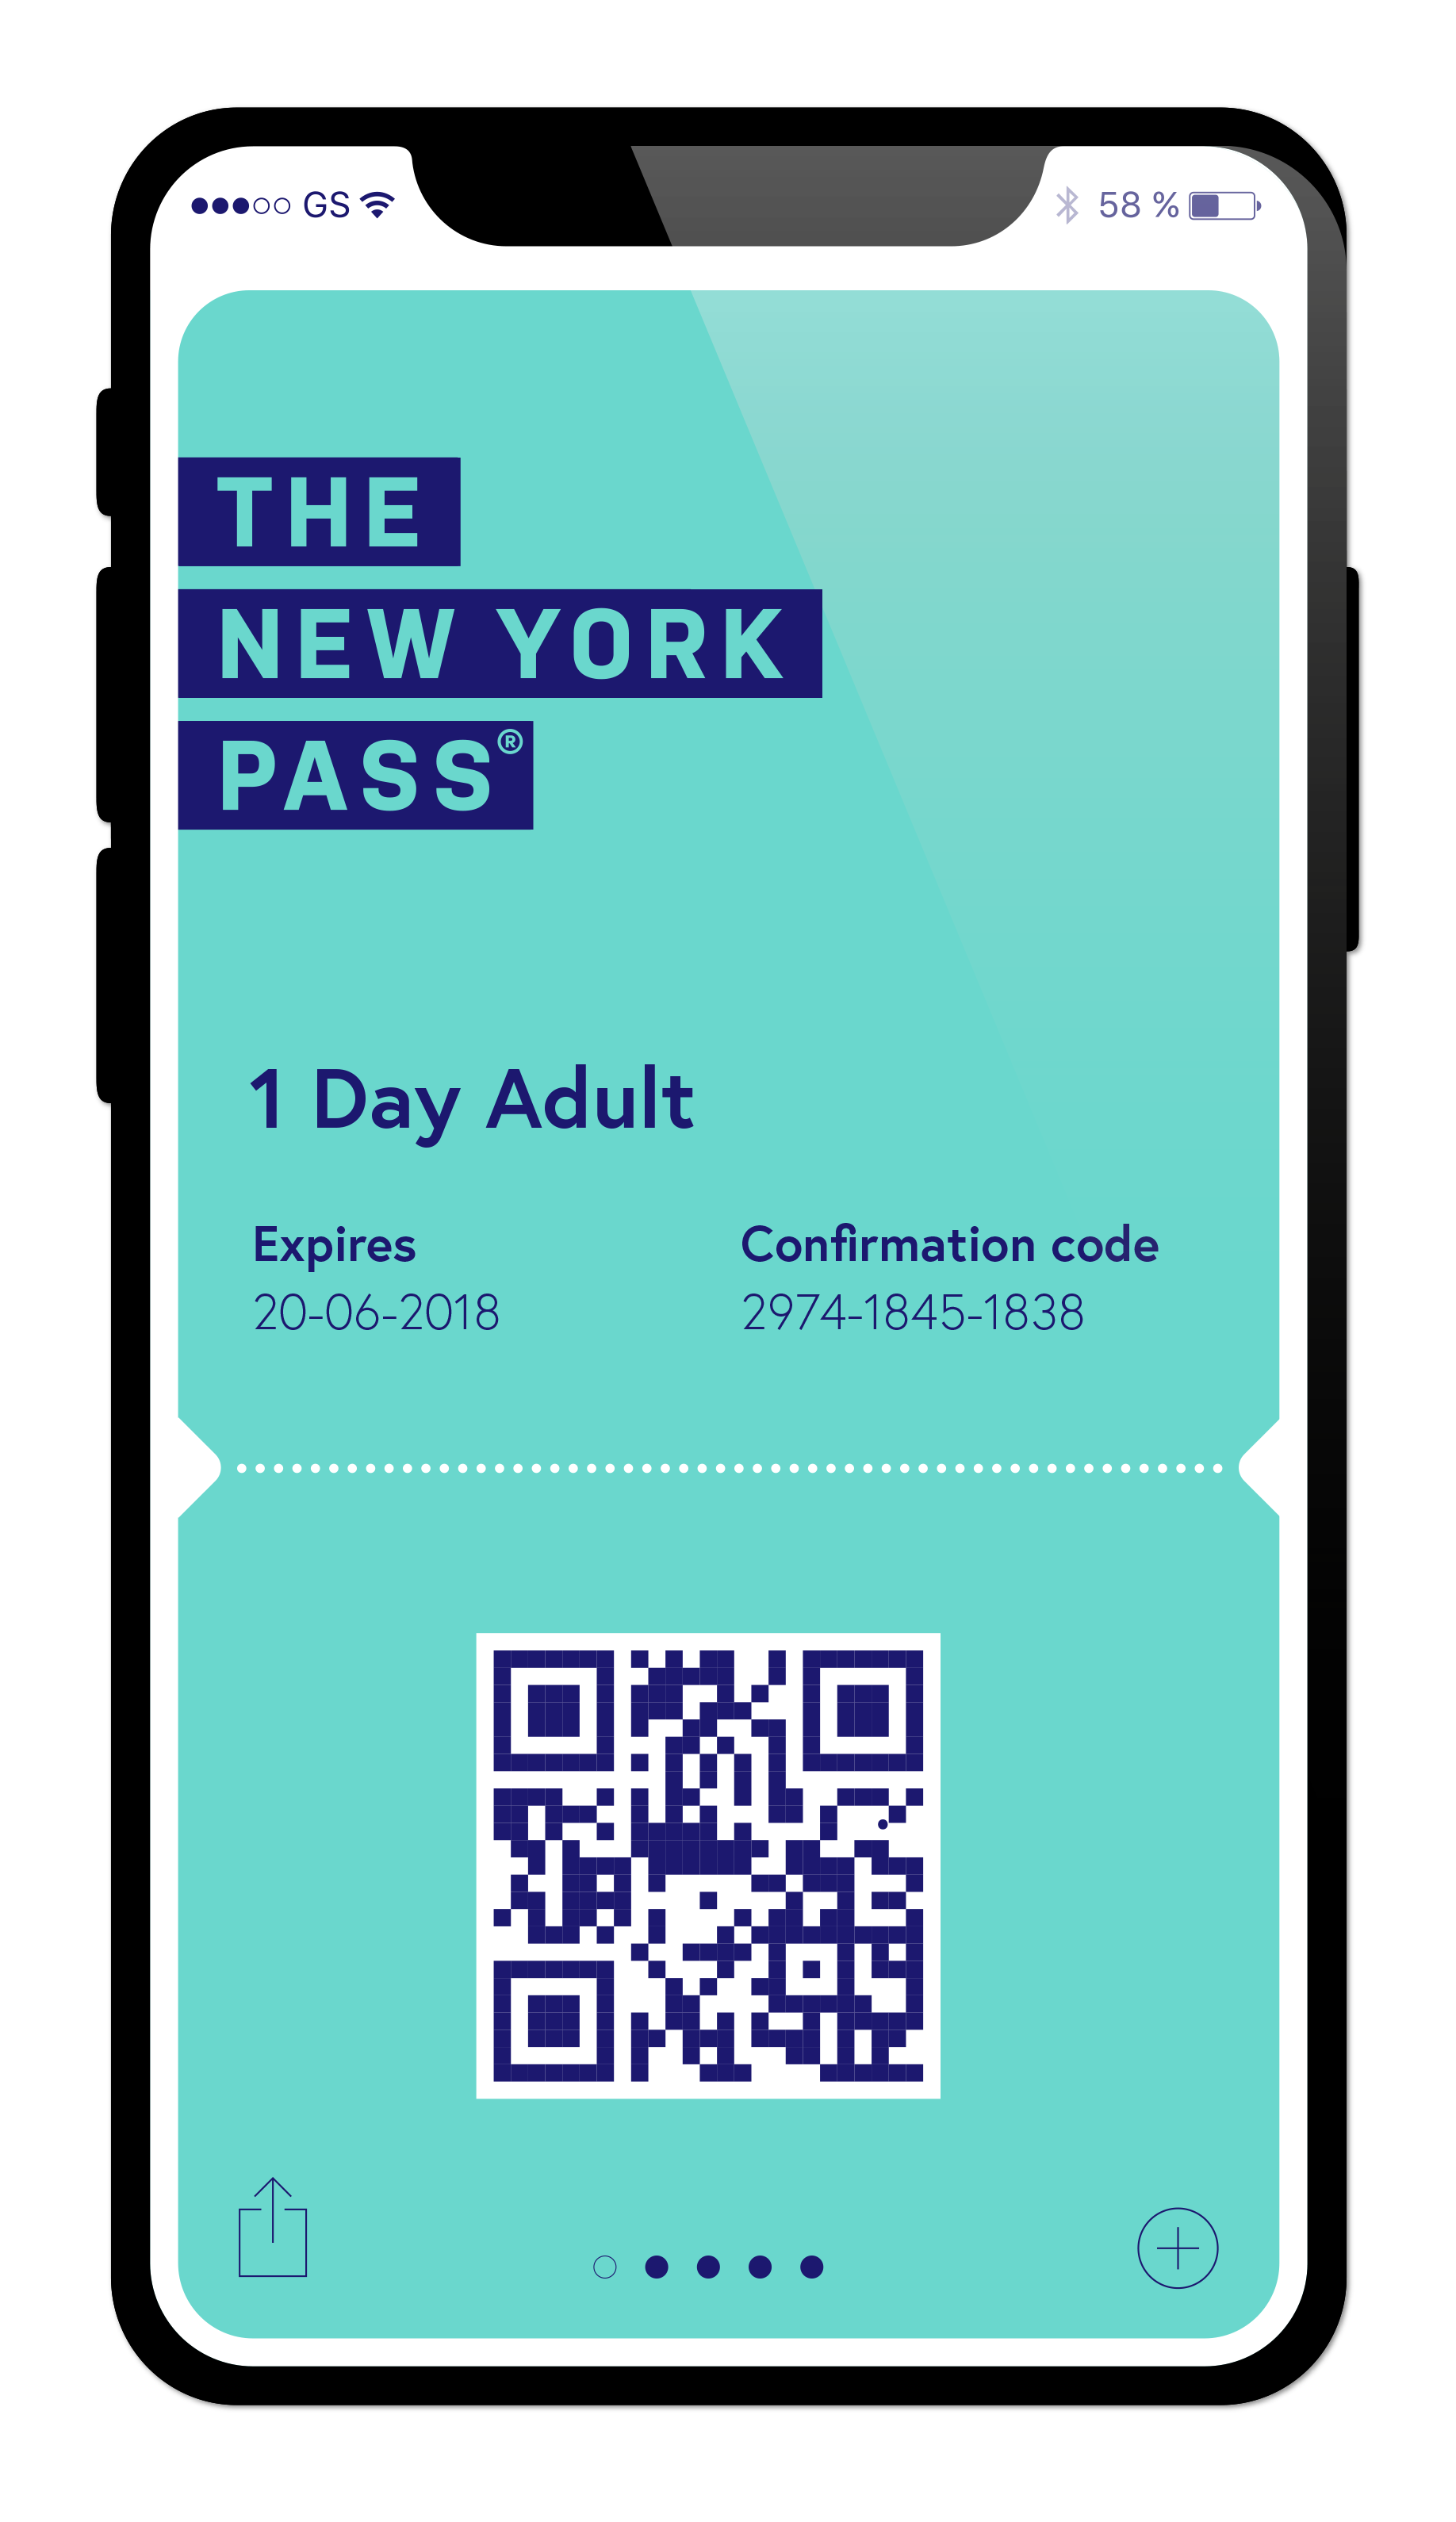 The NEW YORK PASS Mobile App